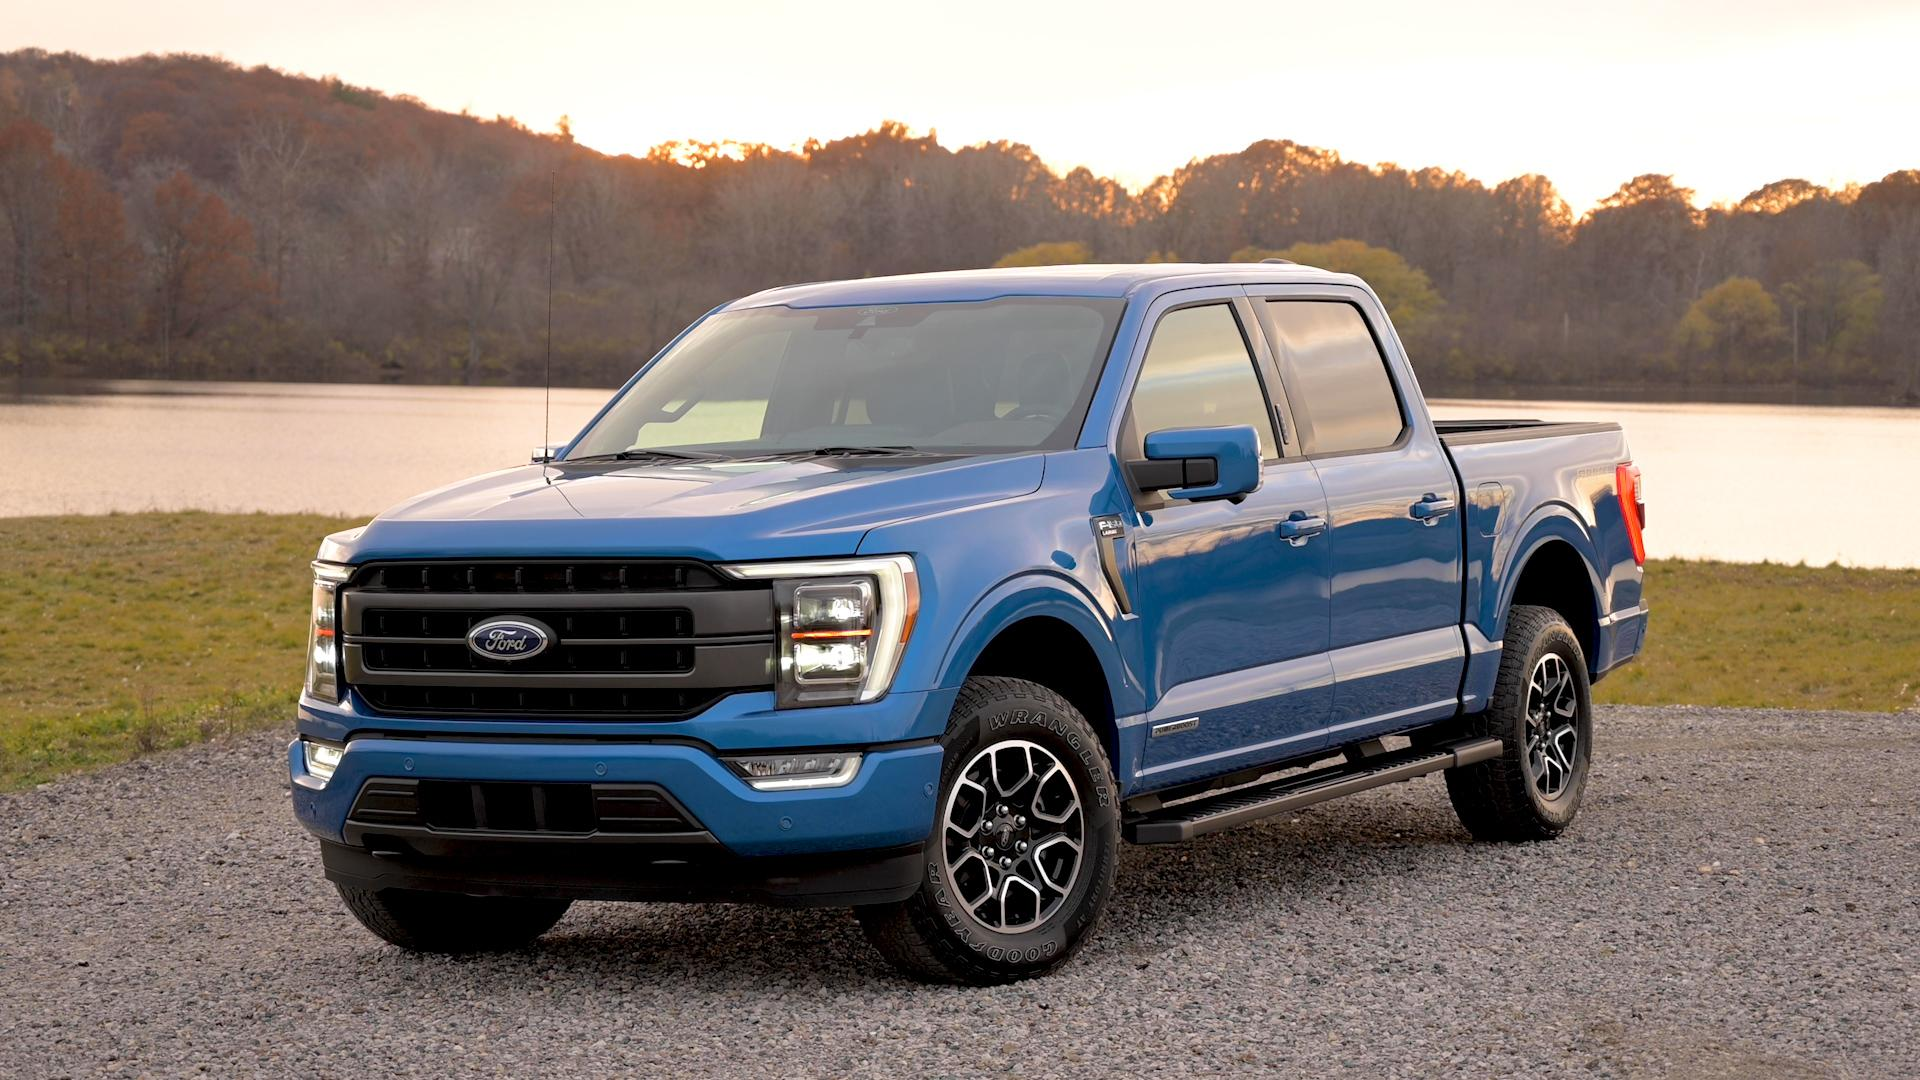 Video: 2021 Ford F-150: Review — Cars.com